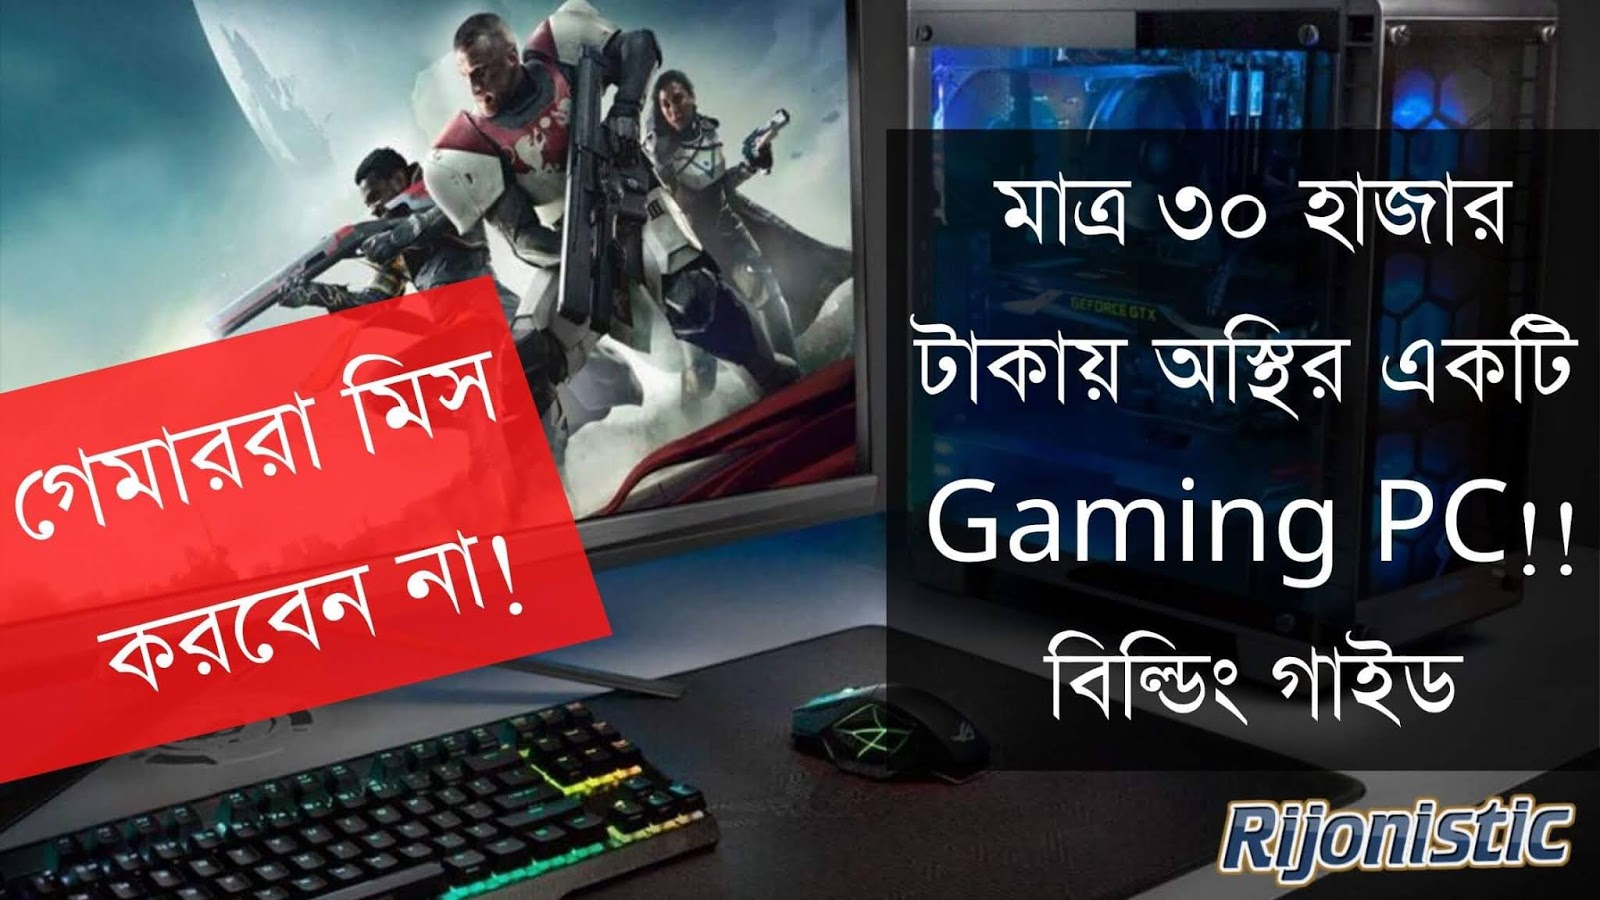 Best Budget Gaming PC under 30 thousand taka, Gaming PC in 30K BDT,